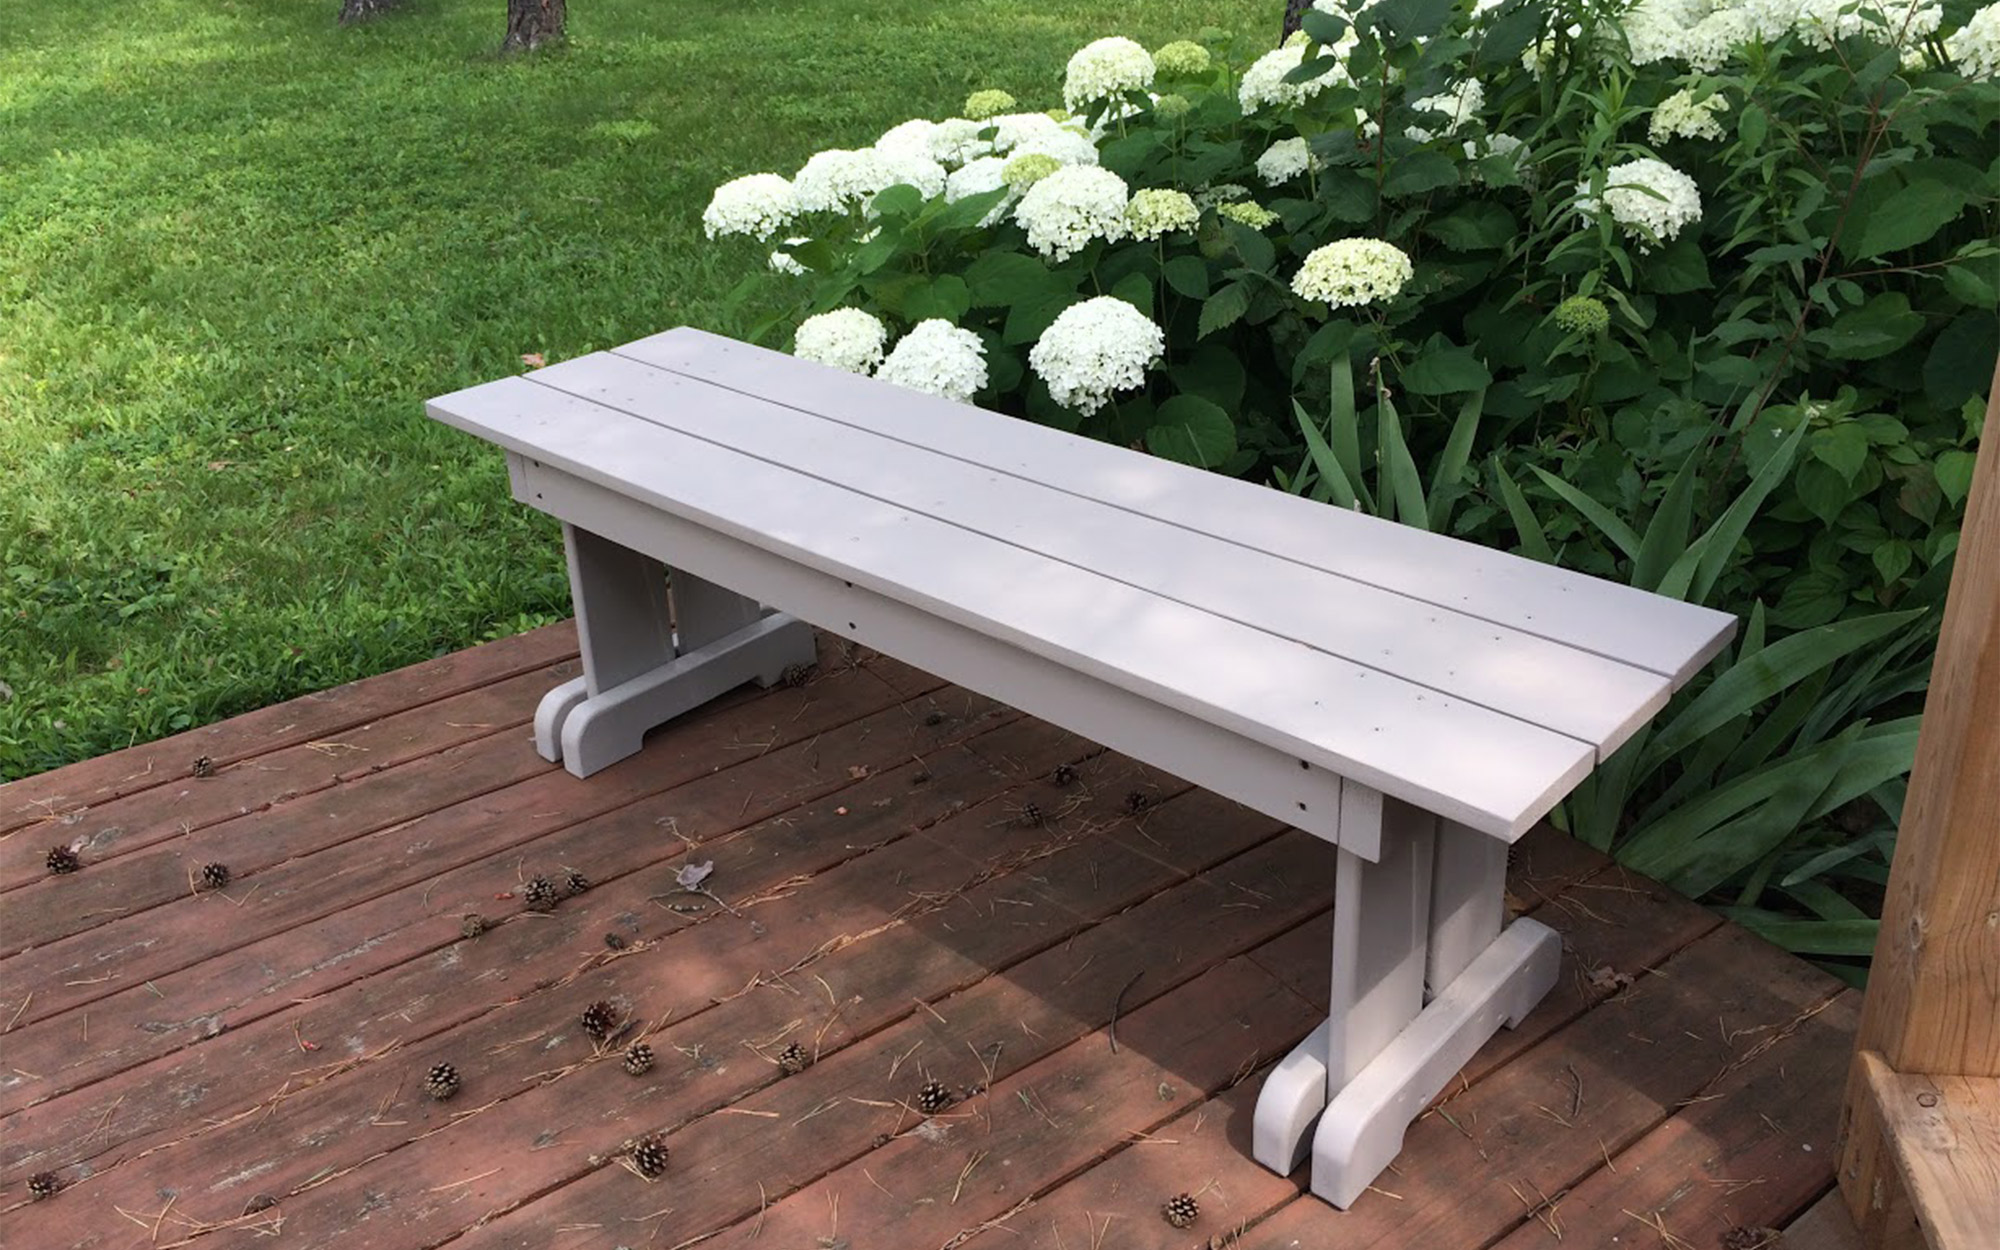 Completed bench